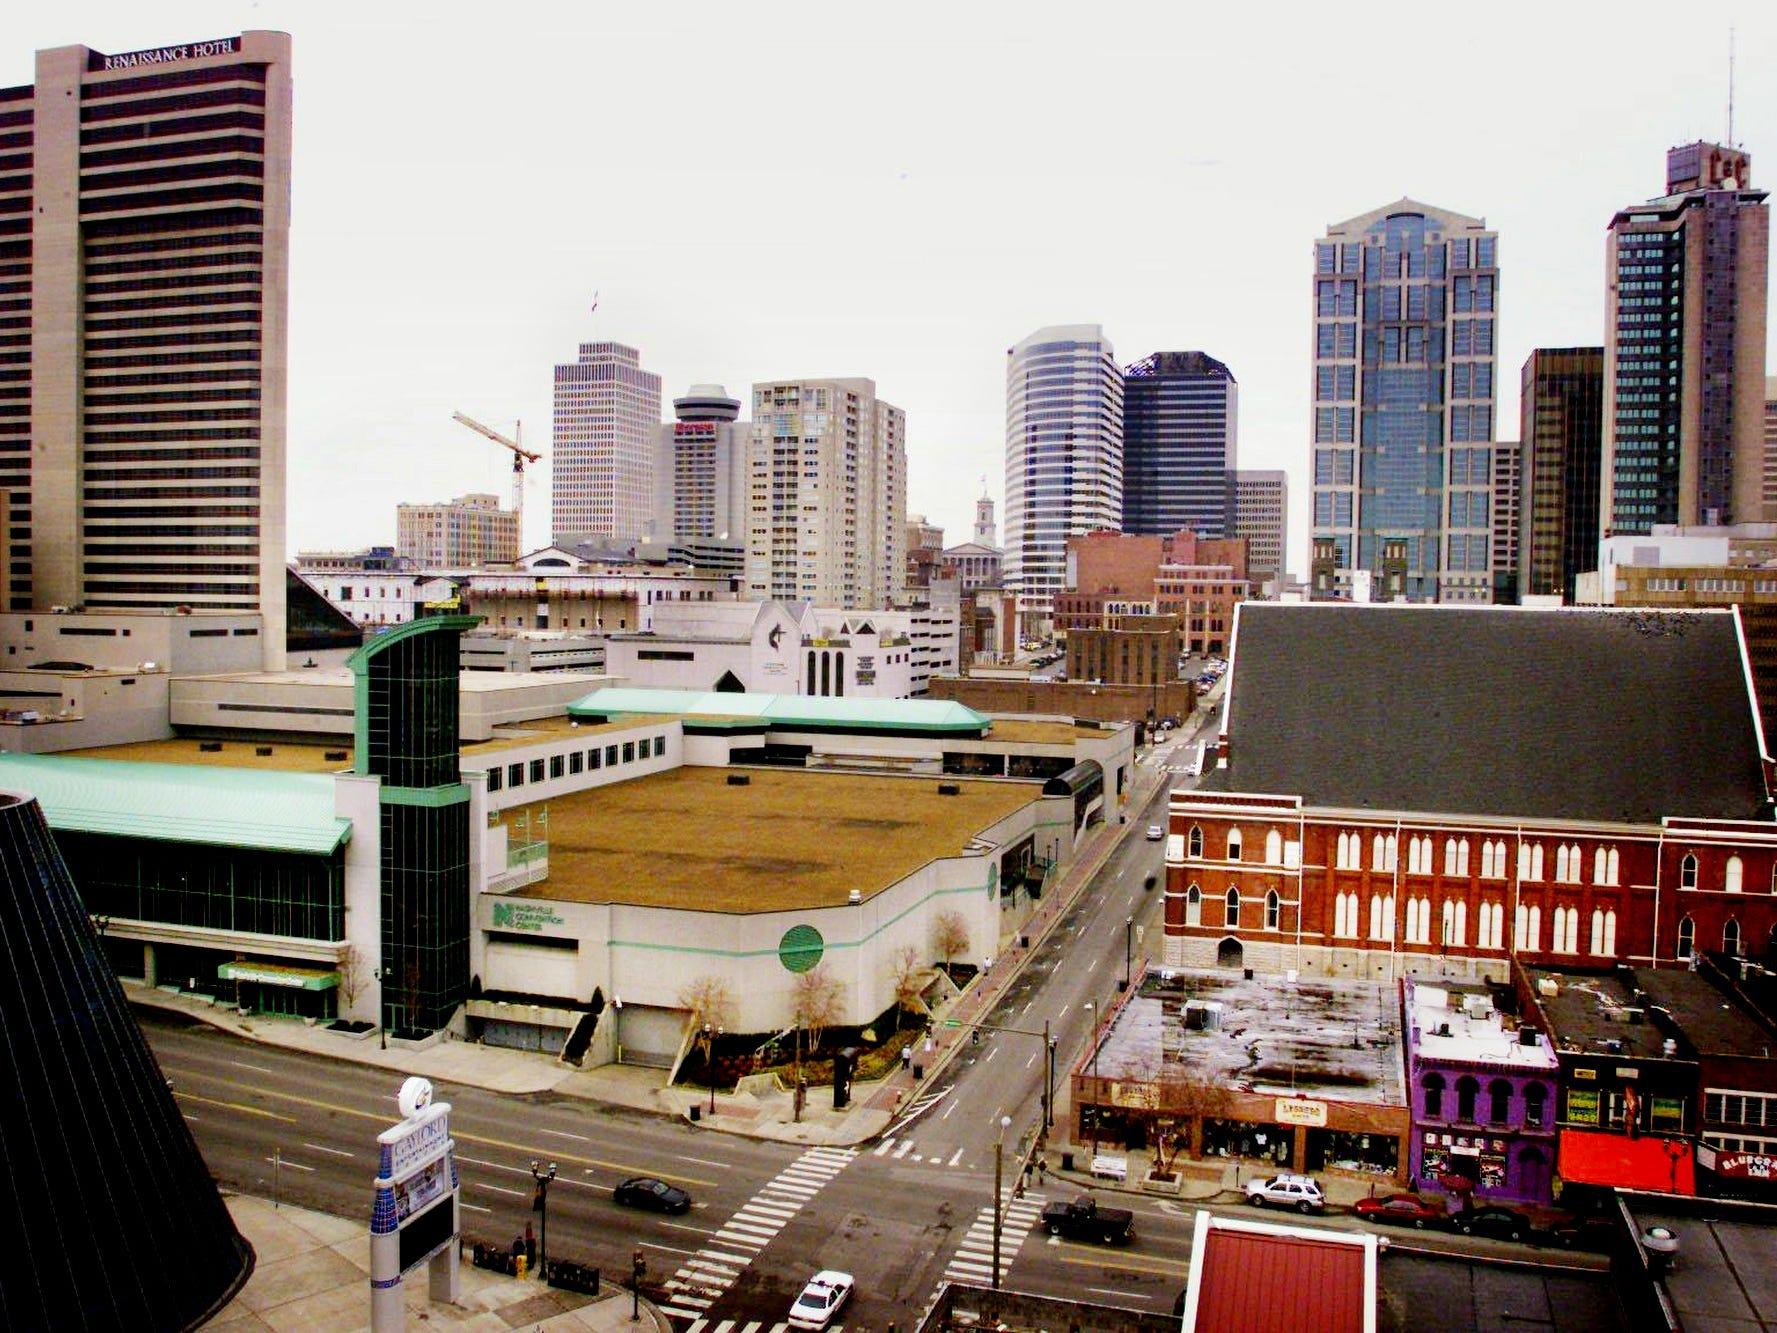 The Nashville Convention Center, shown here Jan. 17, 2001 with Nashville skyline in the background, is in the heart of the tourist area. The center sits across from the Arena and the Ryman, right.